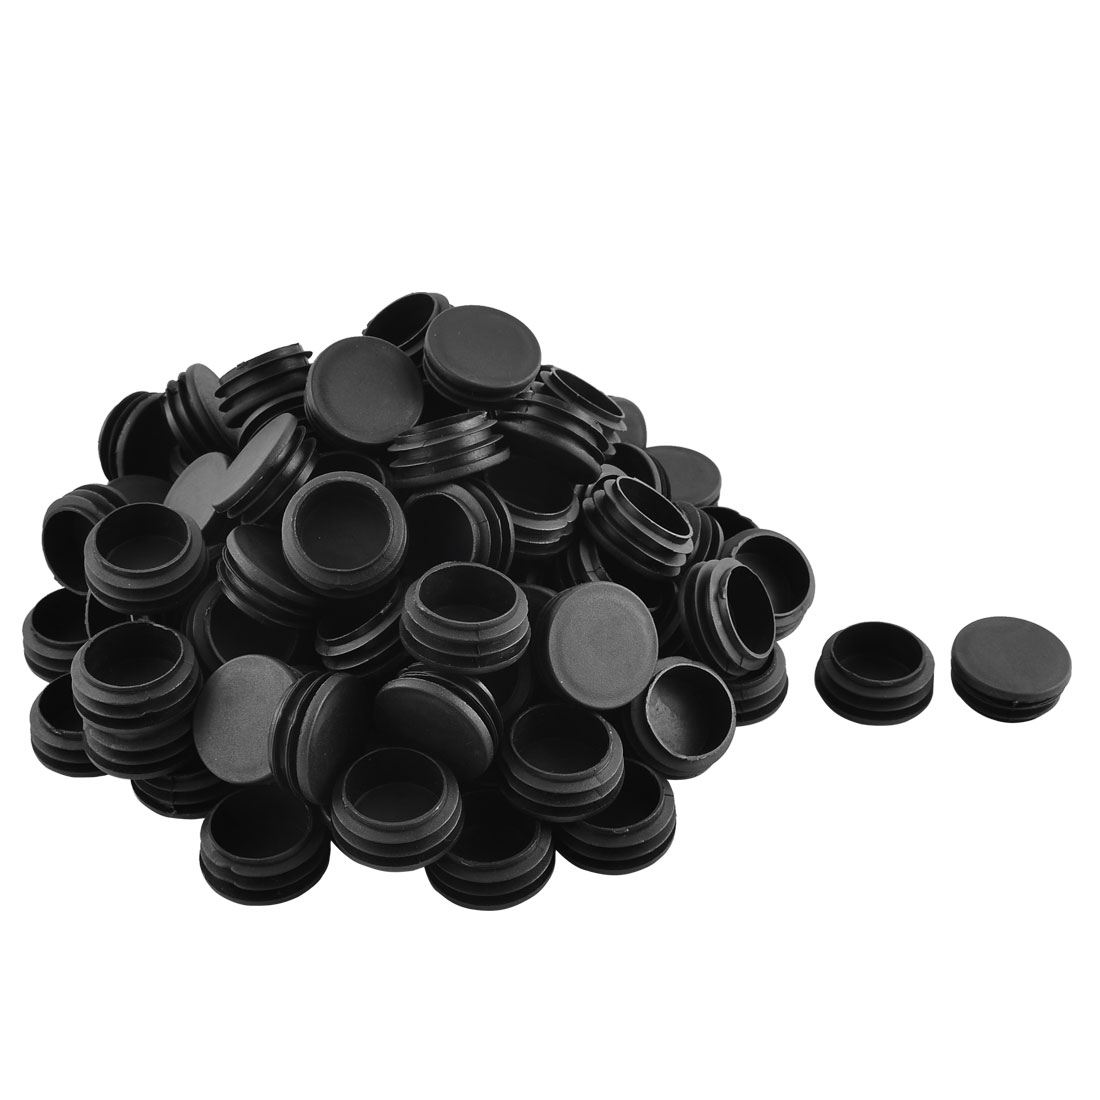 Home Plastic Cylindrical Shaped Furniture Table Chair Leg Feet Tube Insert Black 100 Pcs